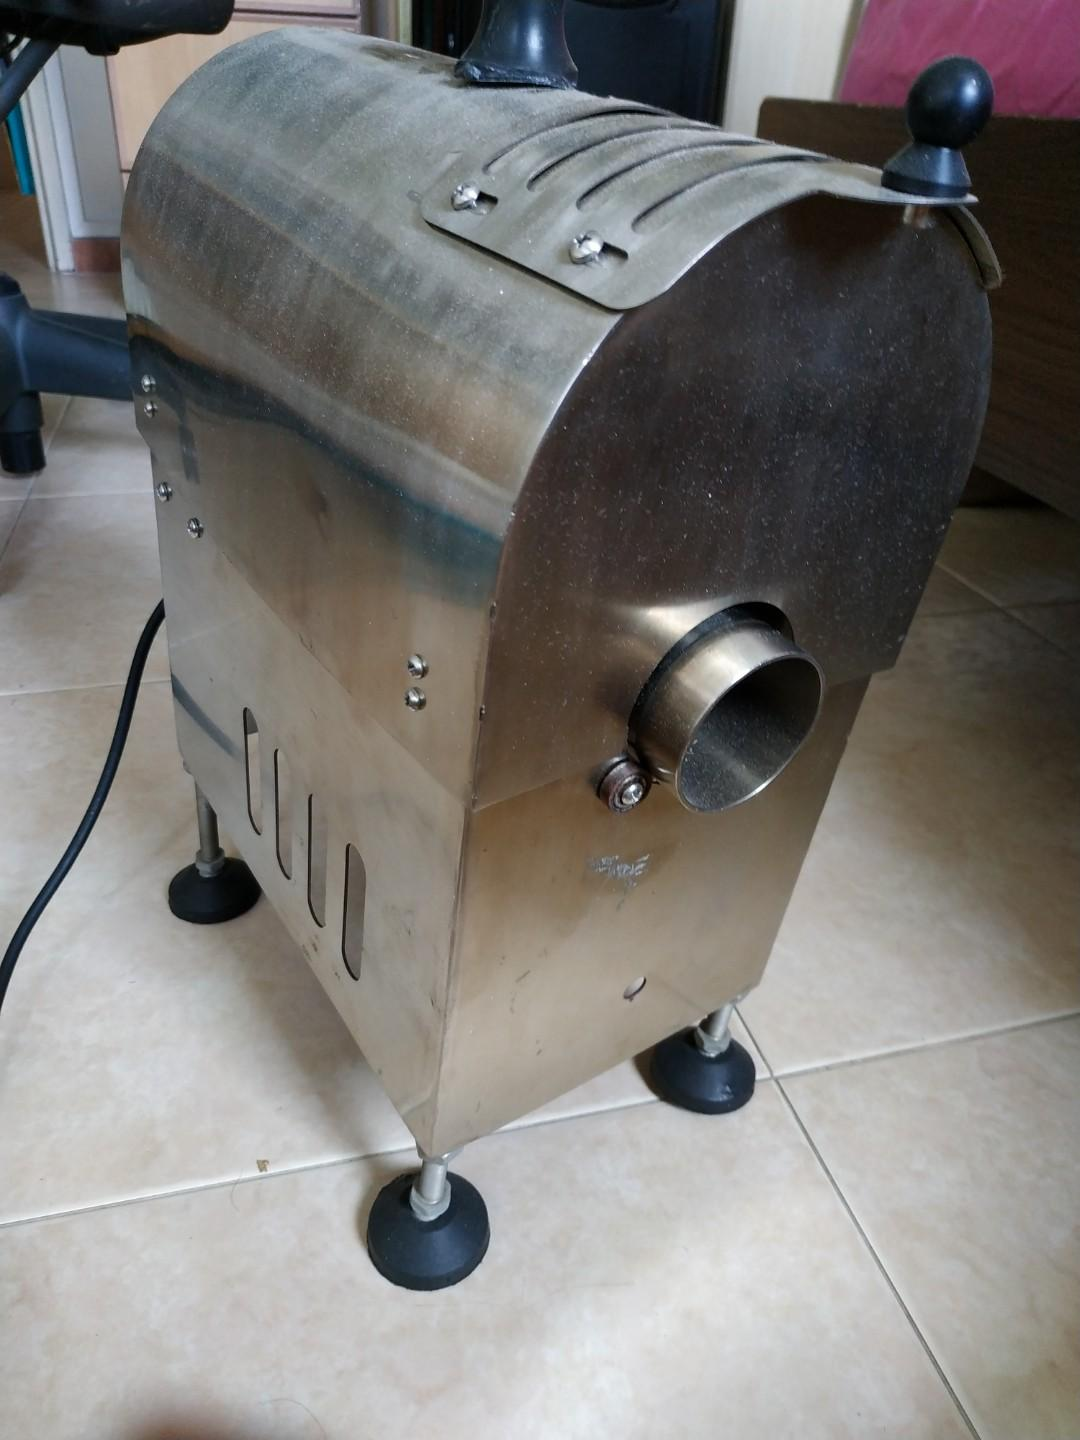 Coffee roaster with usb mastech thermo probe